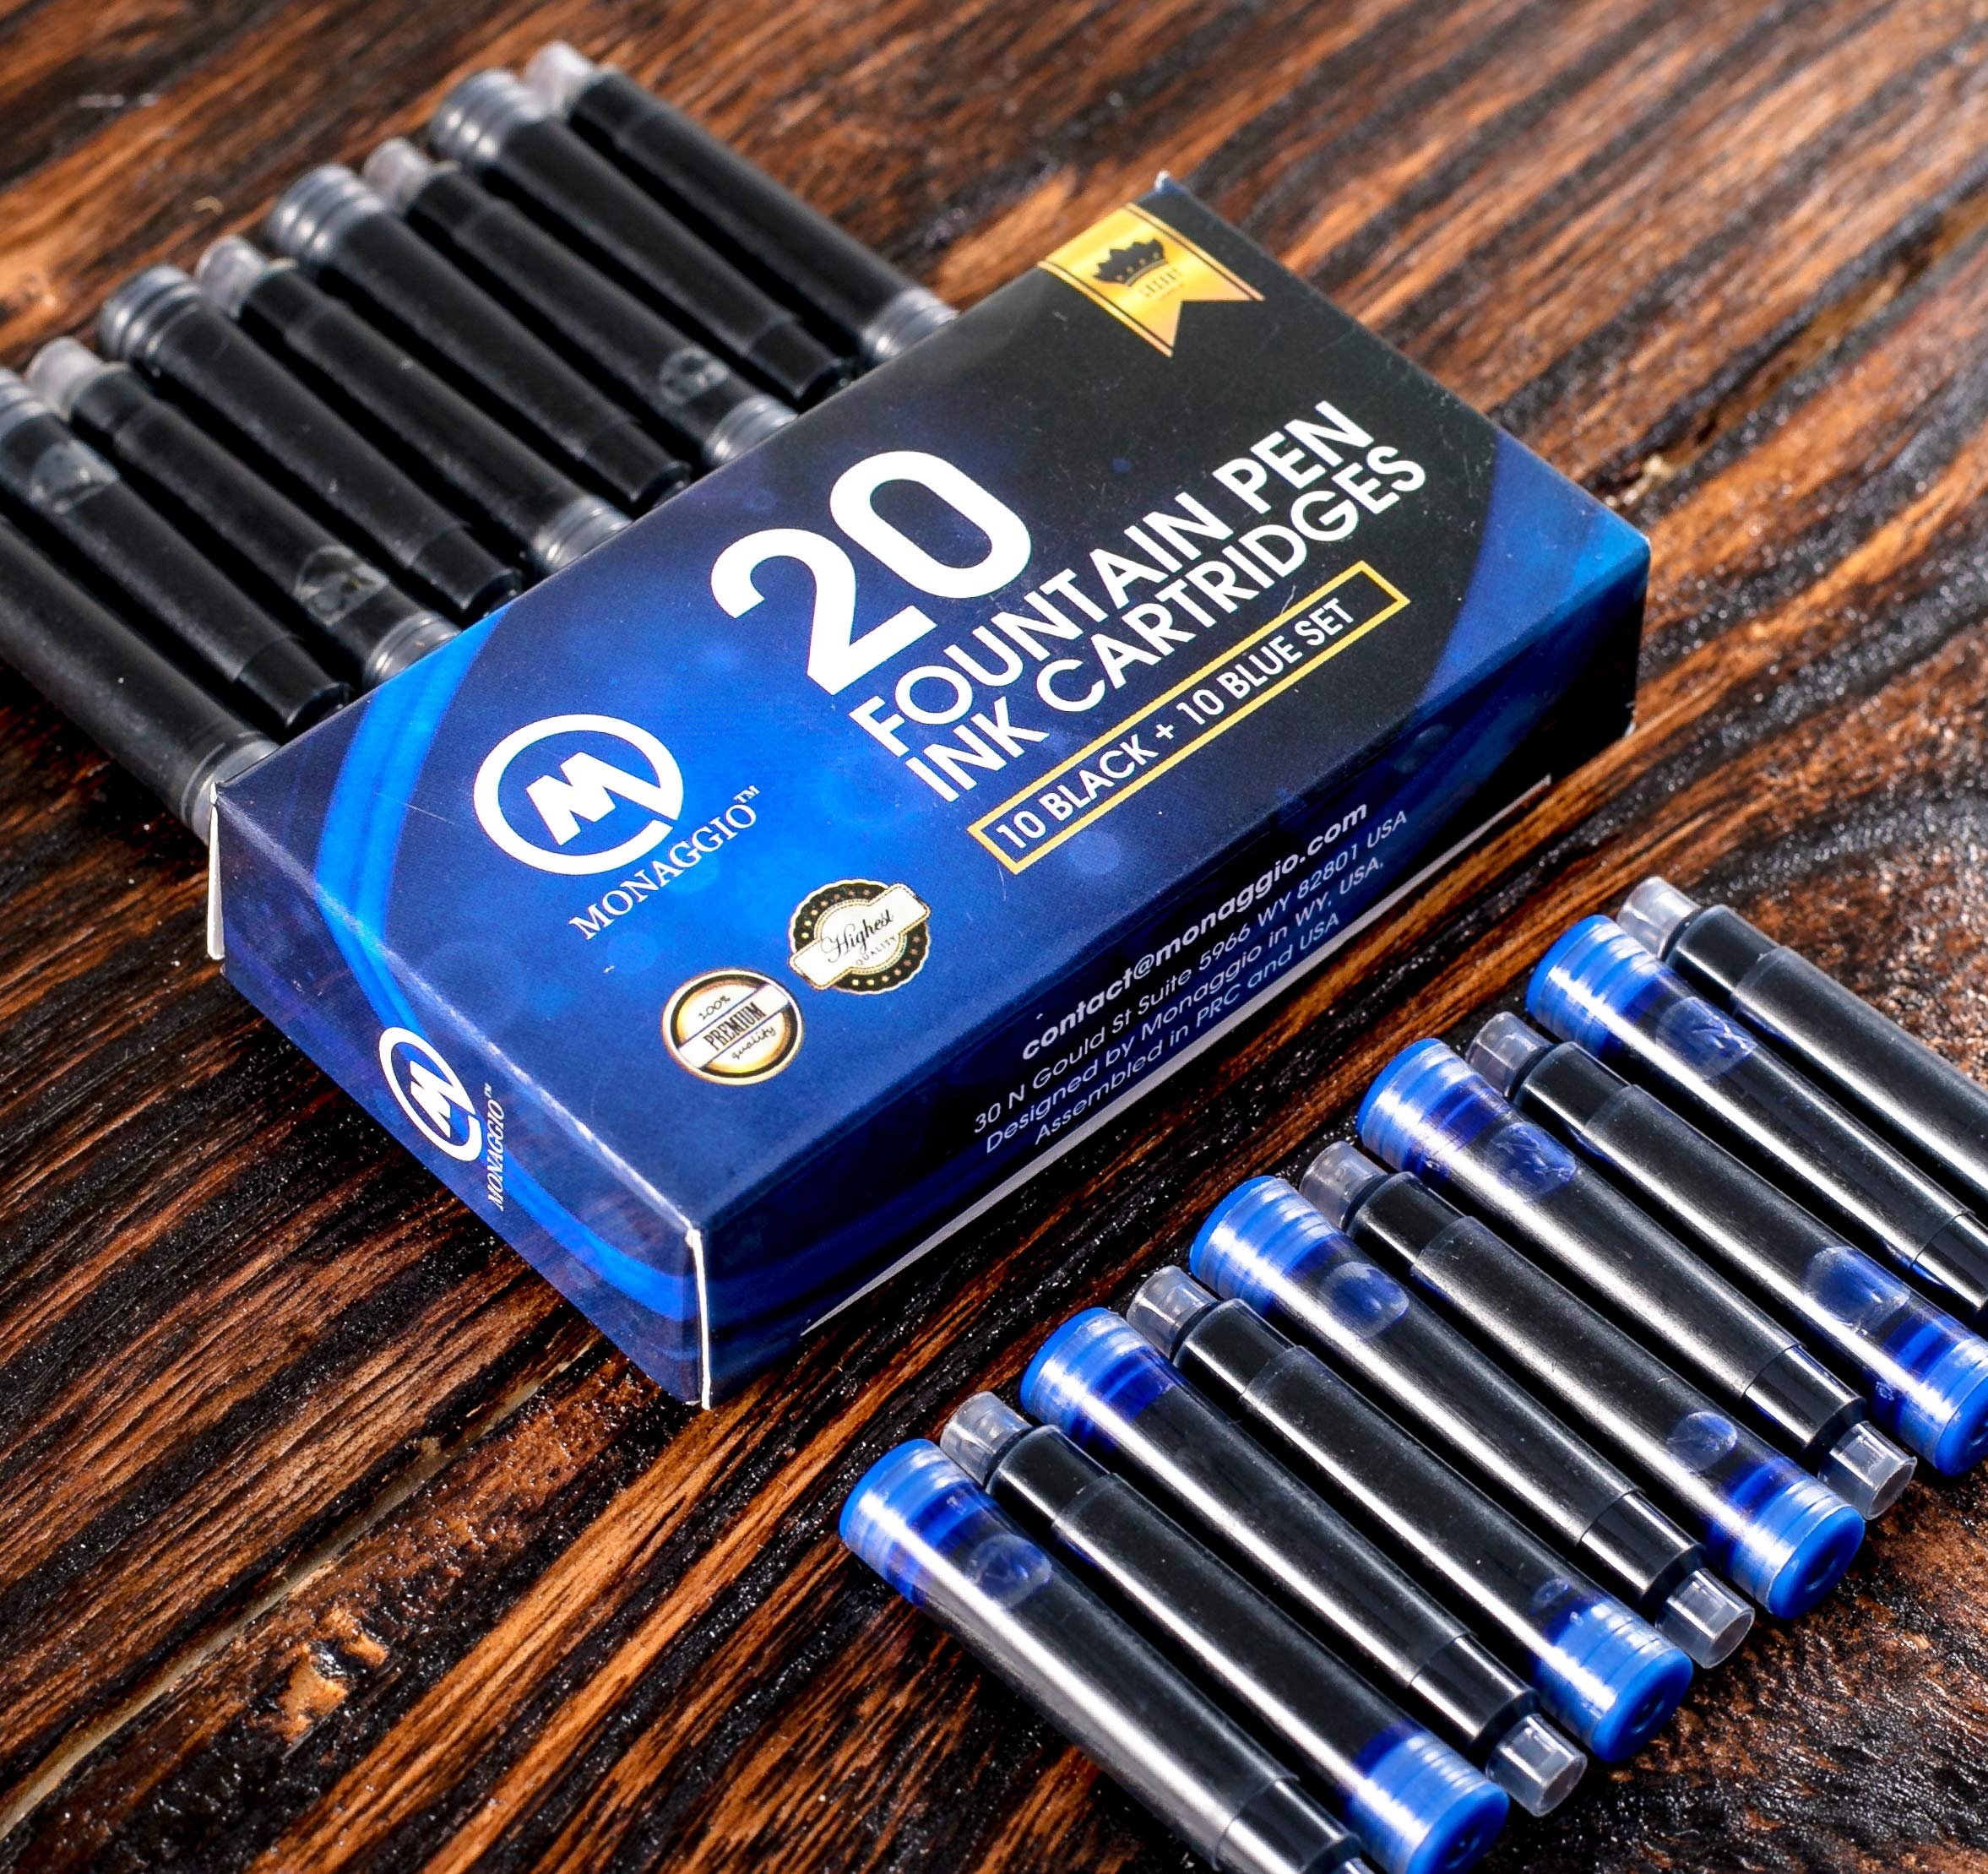 Vivid Black & Blue Ink Cartridges for Fountain Pens. Amazing Big Pack of 20 International, Standard Size Cartridges. Perfect for Calligraphy Pen. Universal, Fine Design with Long Lasting Shade!